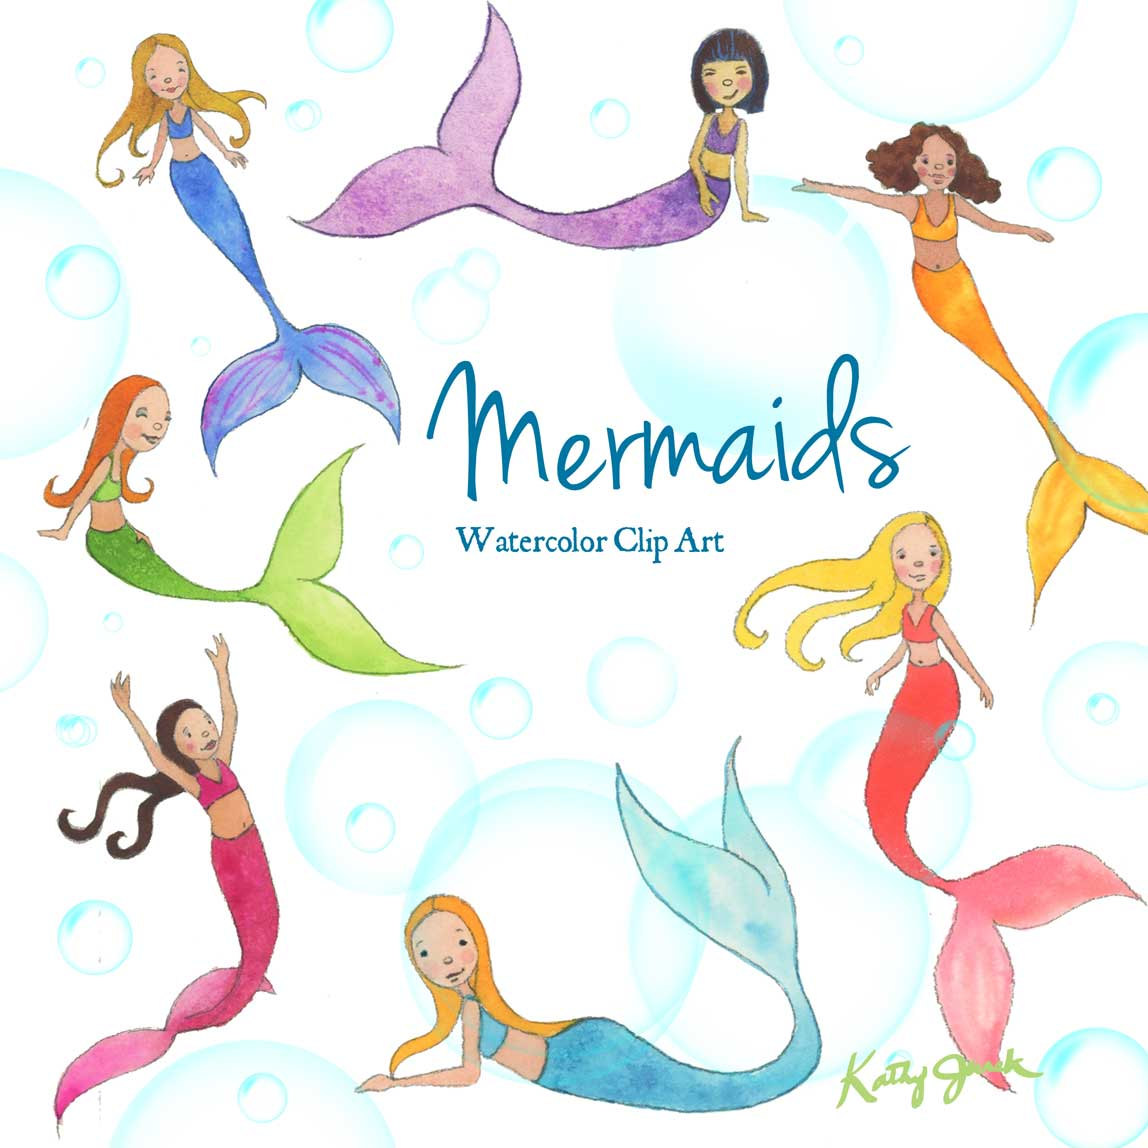 1148x1148 Emerging Pictures Of Mermaids For Kids Disney Mermaid Princess